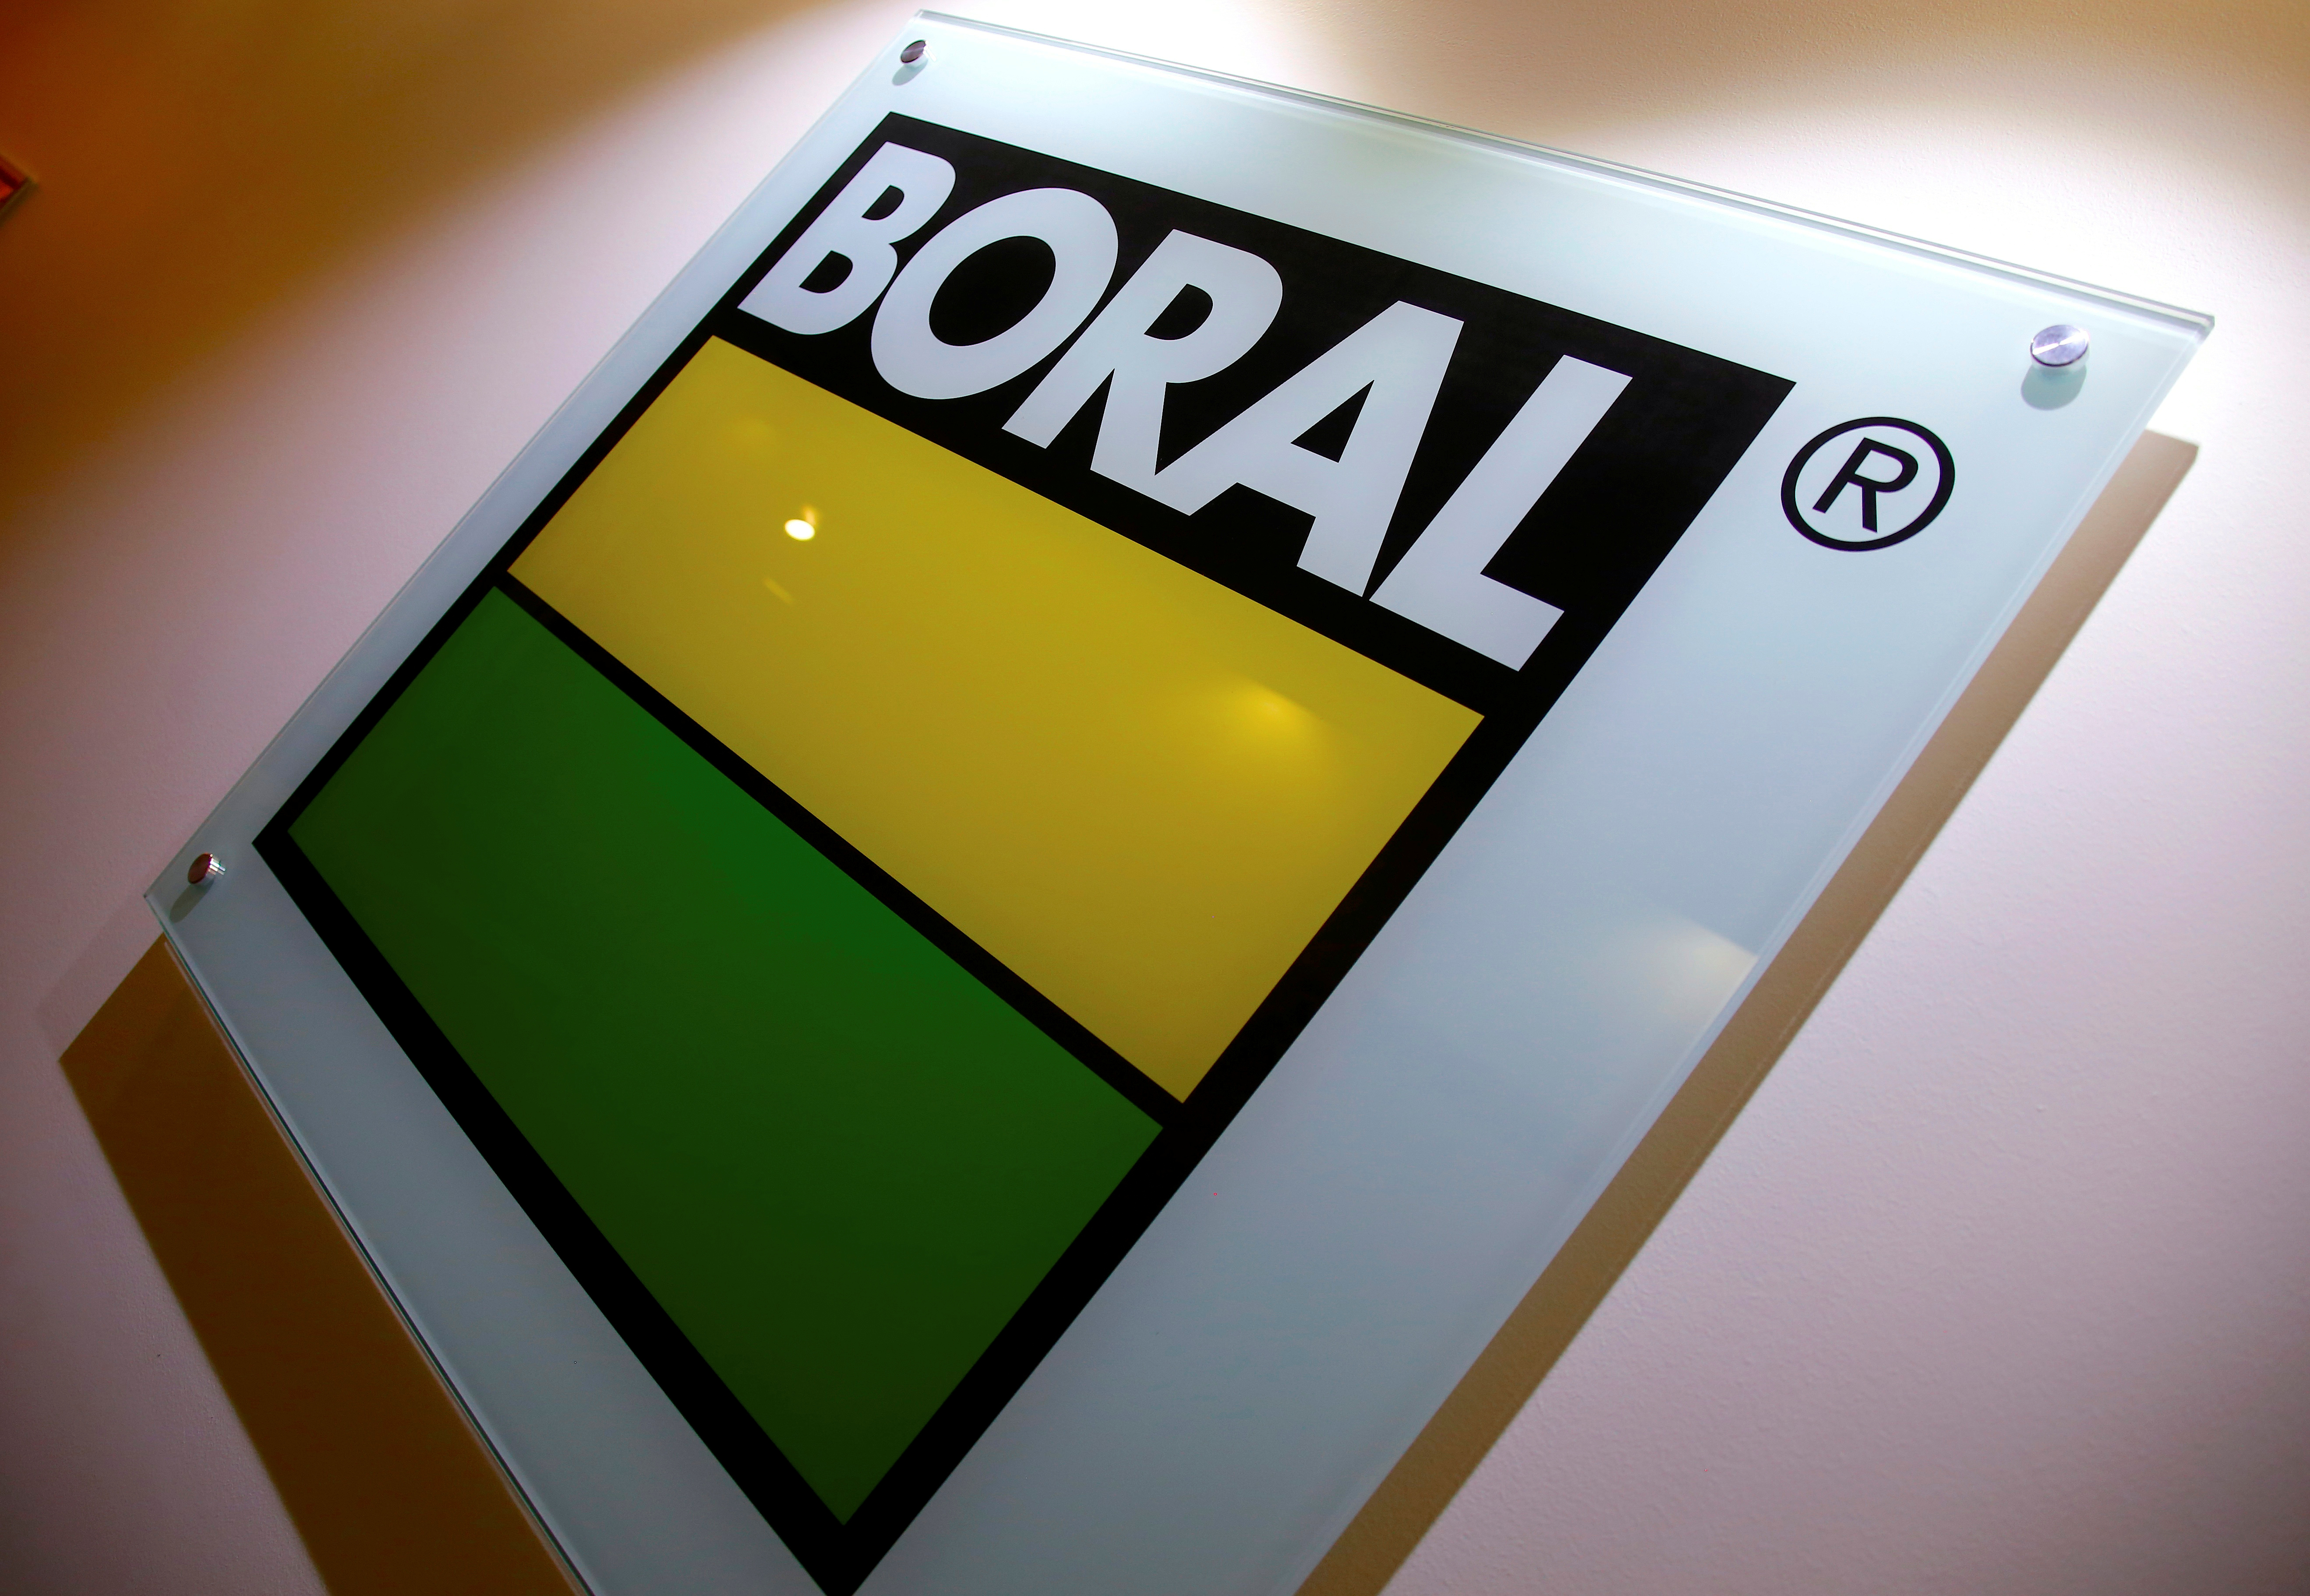 The logo of Boral Ltd, Australia's biggest supplier of construction materials and building products, adorns a wall in the foyer of their Sydney headquarters in Australia, November 21, 2016.     REUTERS/David Gray